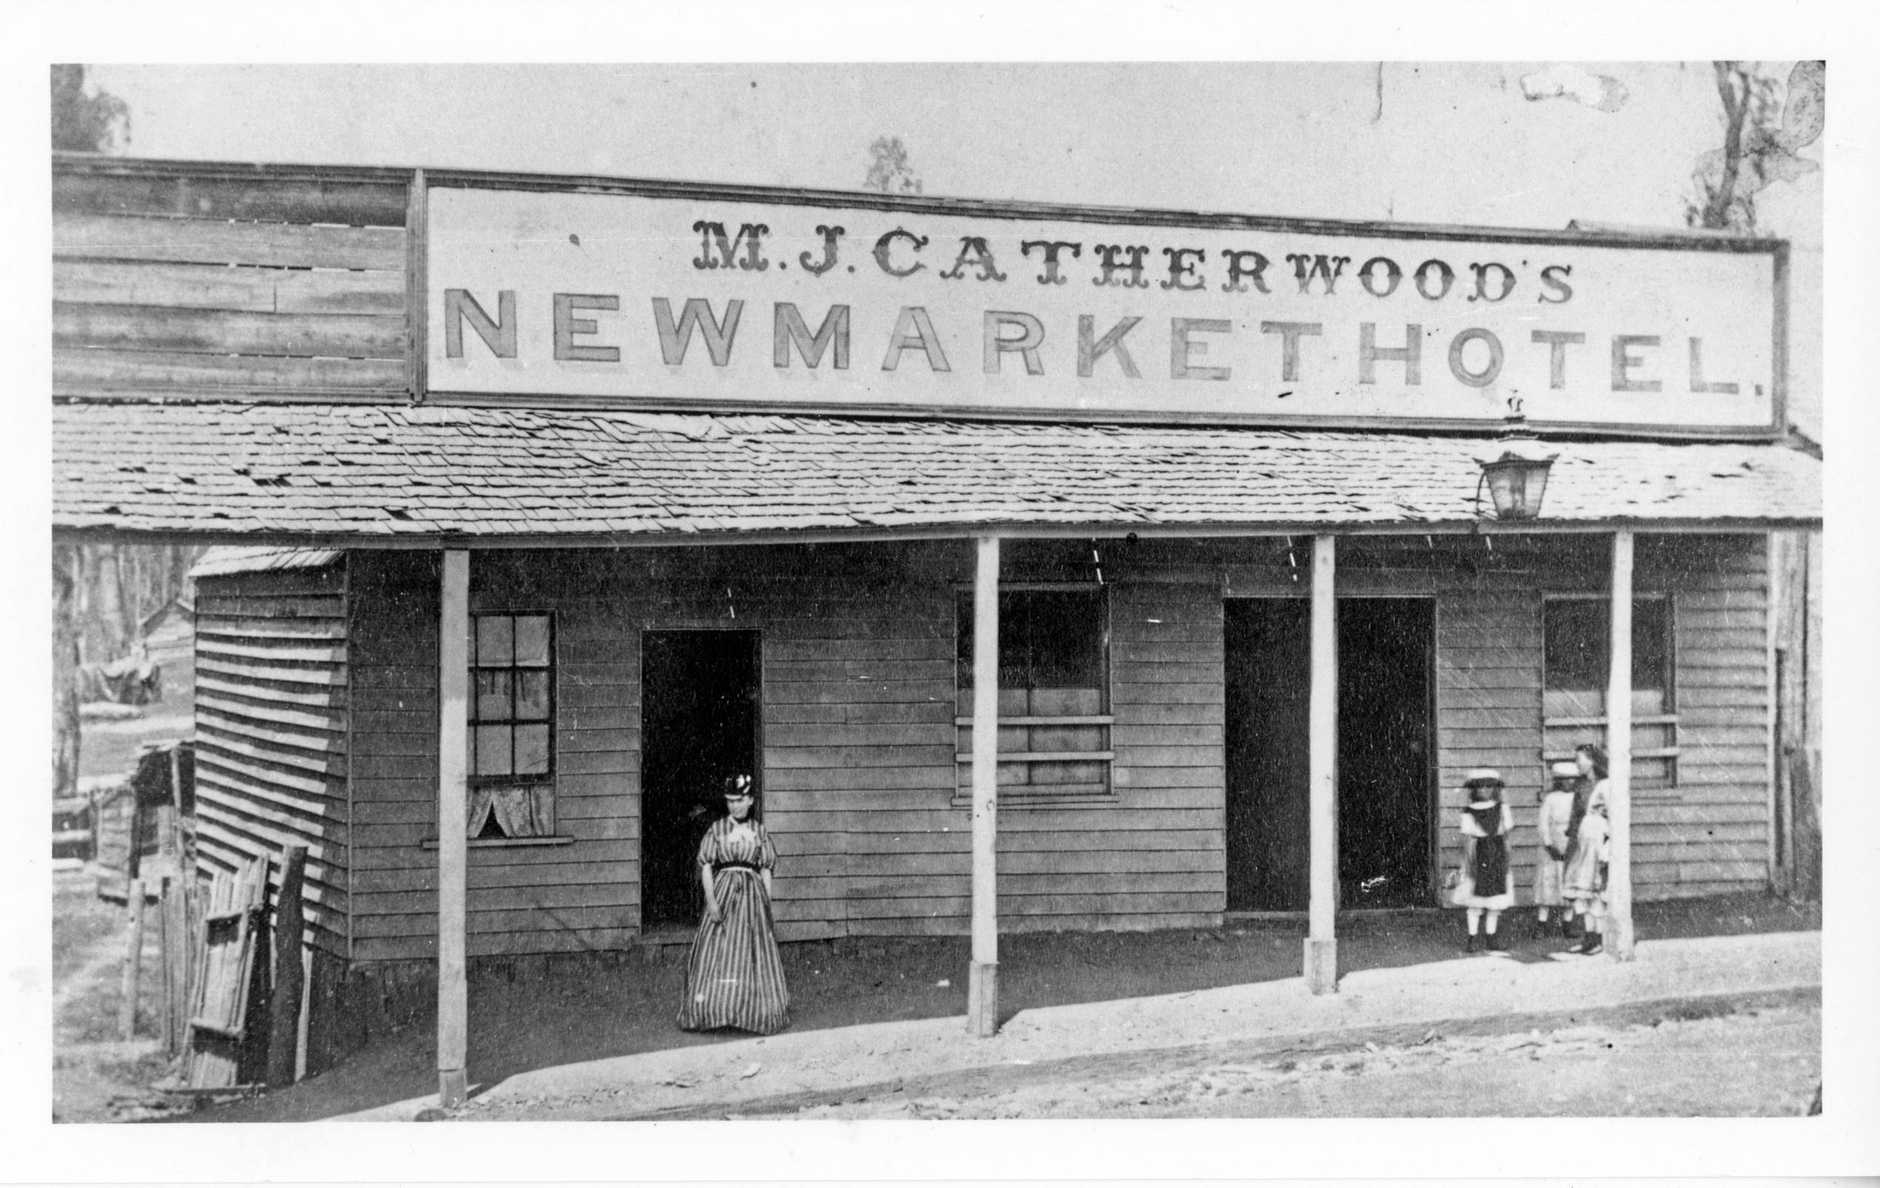 Empire Hotel, Gympie. USed to be the Newmarket Hotel